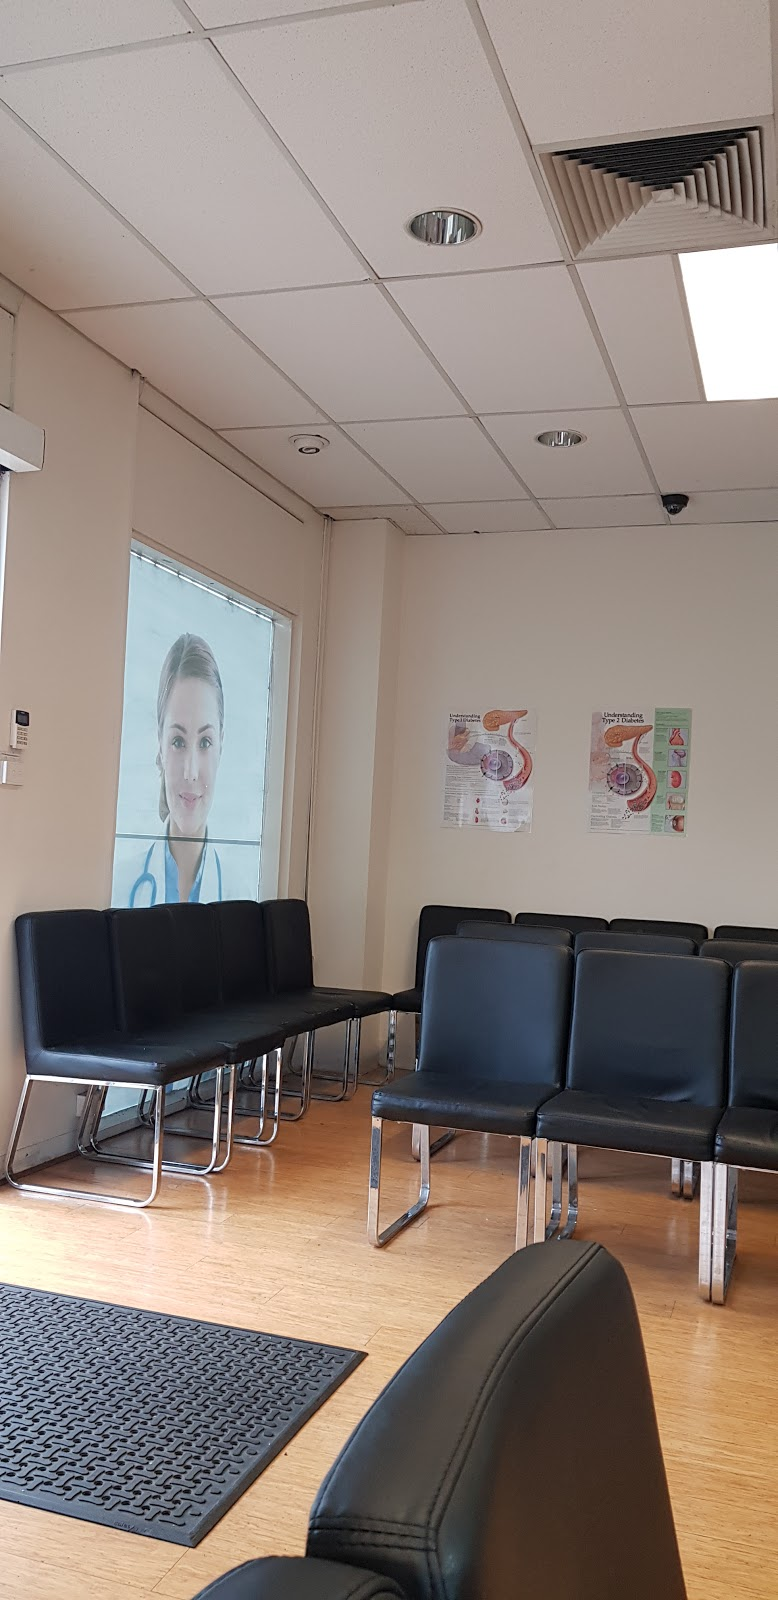 Rex Medical Clinic Bundoora | doctor | 93-97 Plenty Rd, Bundoora VIC 3083, Australia | 0394677600 OR +61 3 9467 7600